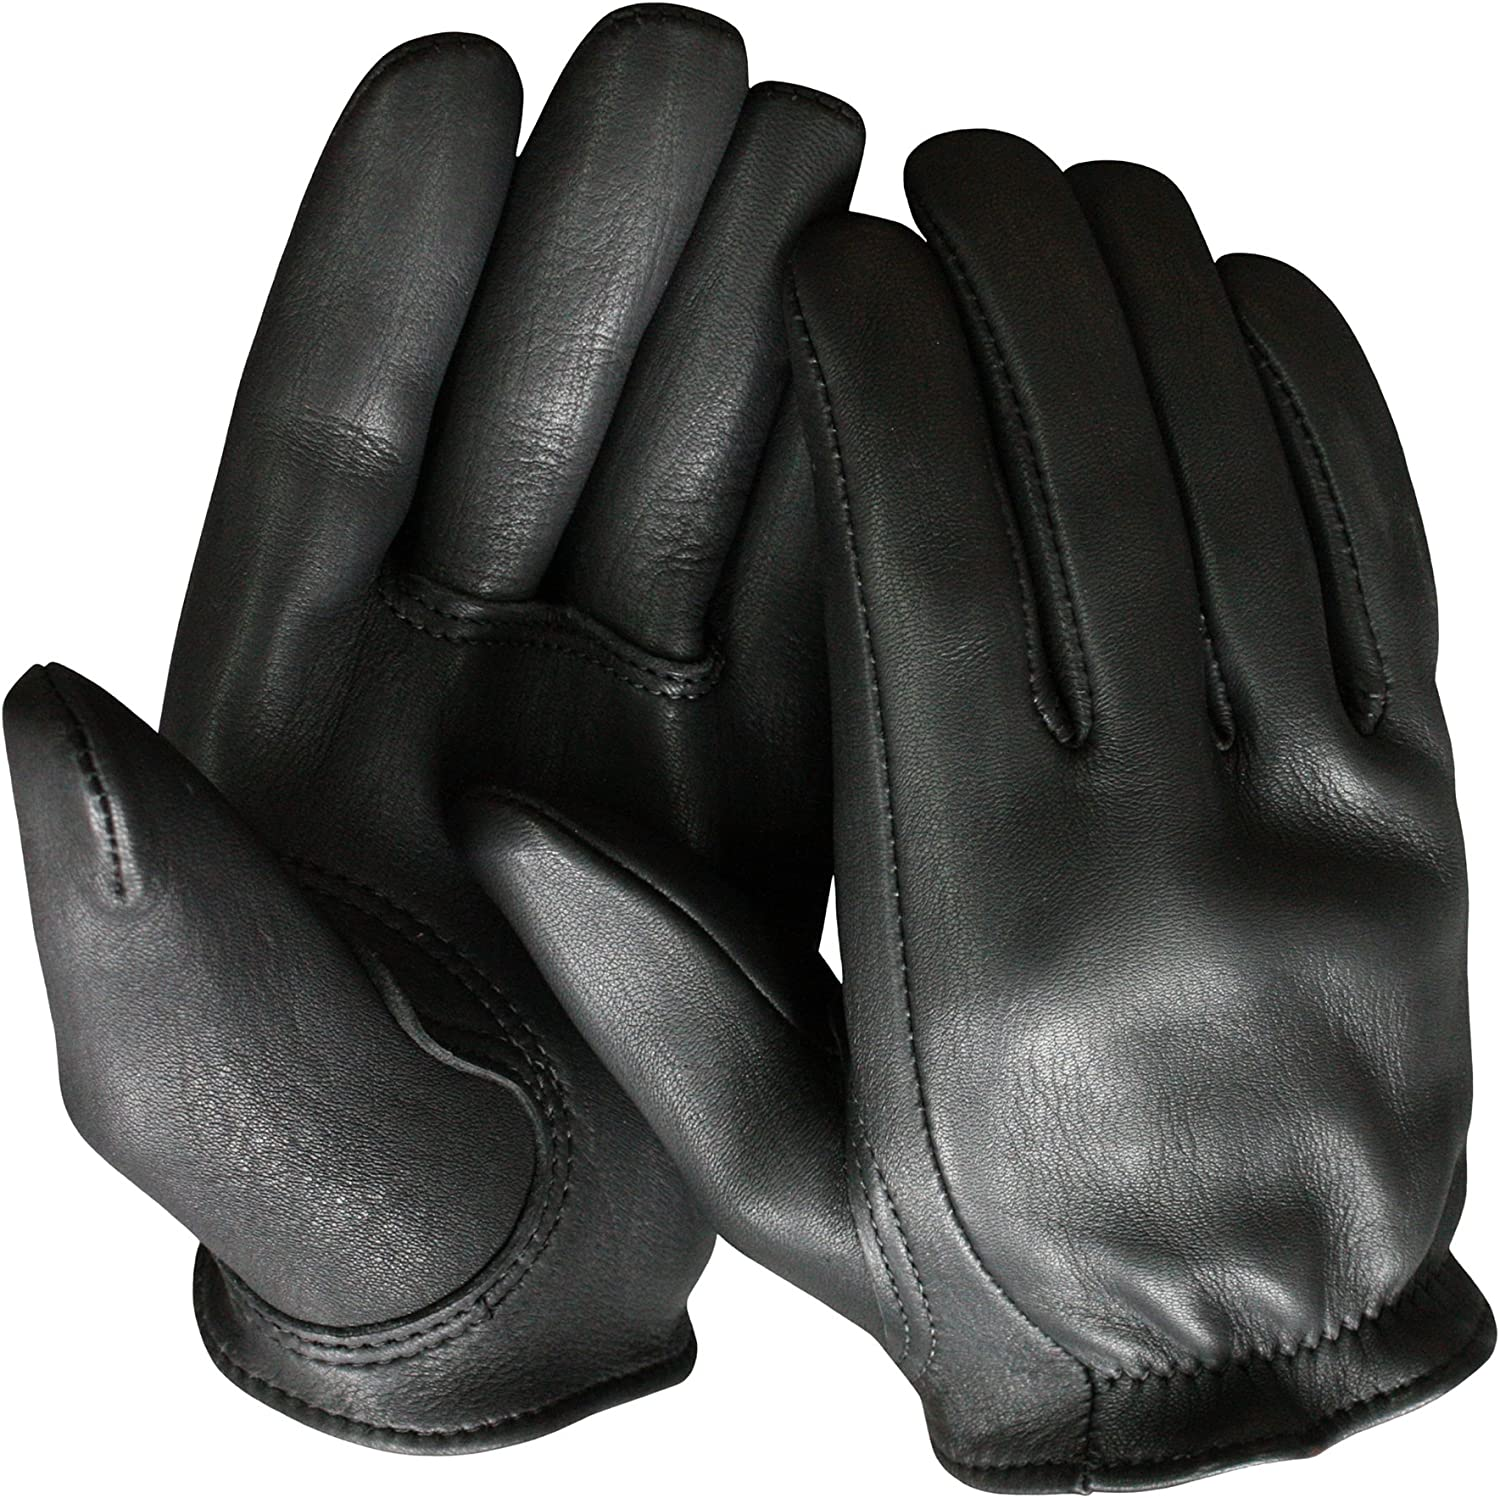 Real Hide Leather Driving Tactical Police Motorcycle Shop Gloves Large-XLarge